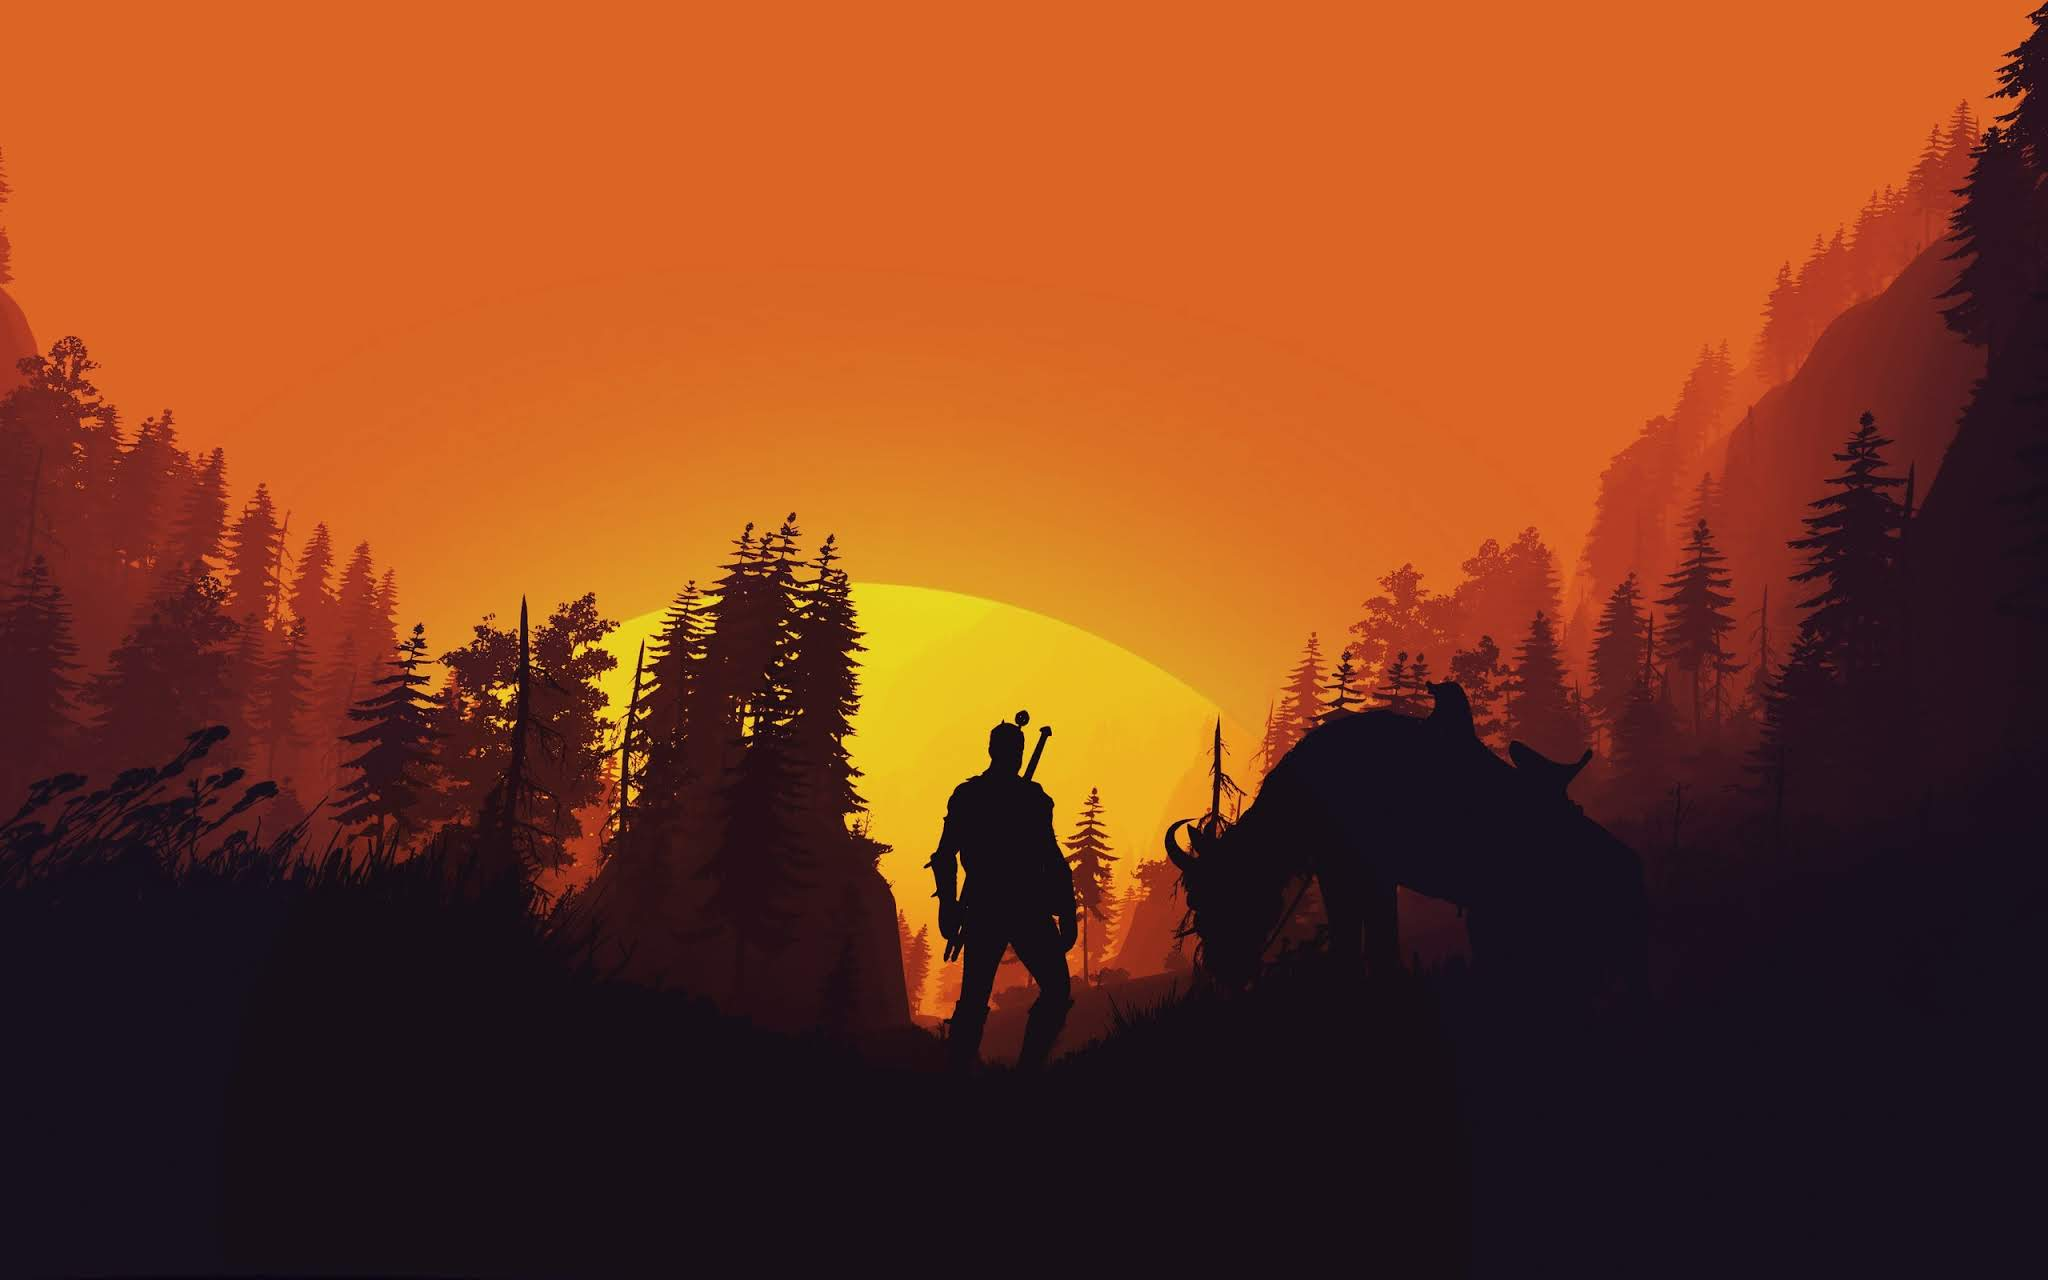 Minimalist The Witcher Wallpapers - Wallpaper Cave